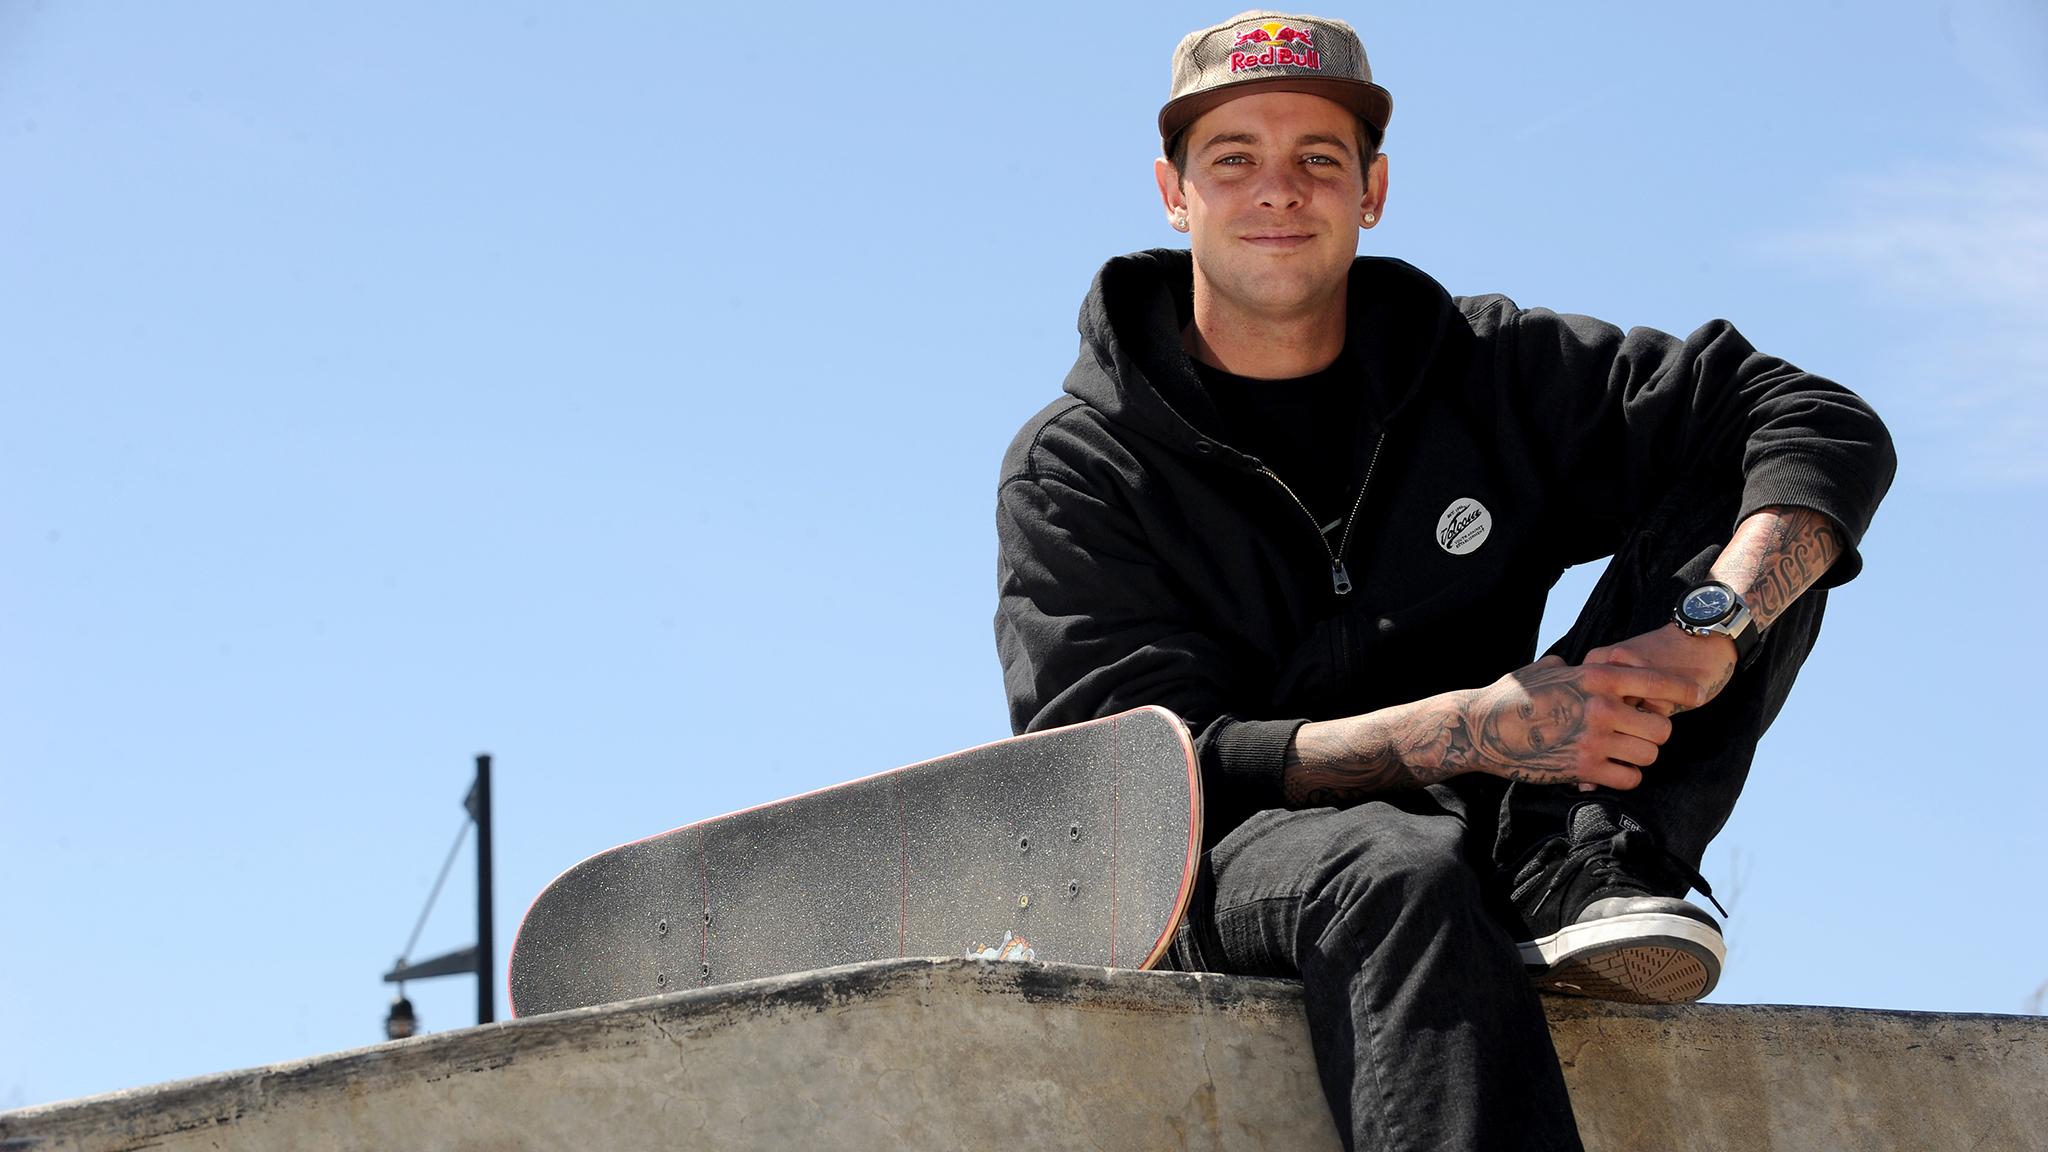 Ryan Sheckler in New York City to promote his new sponsor Gillette.